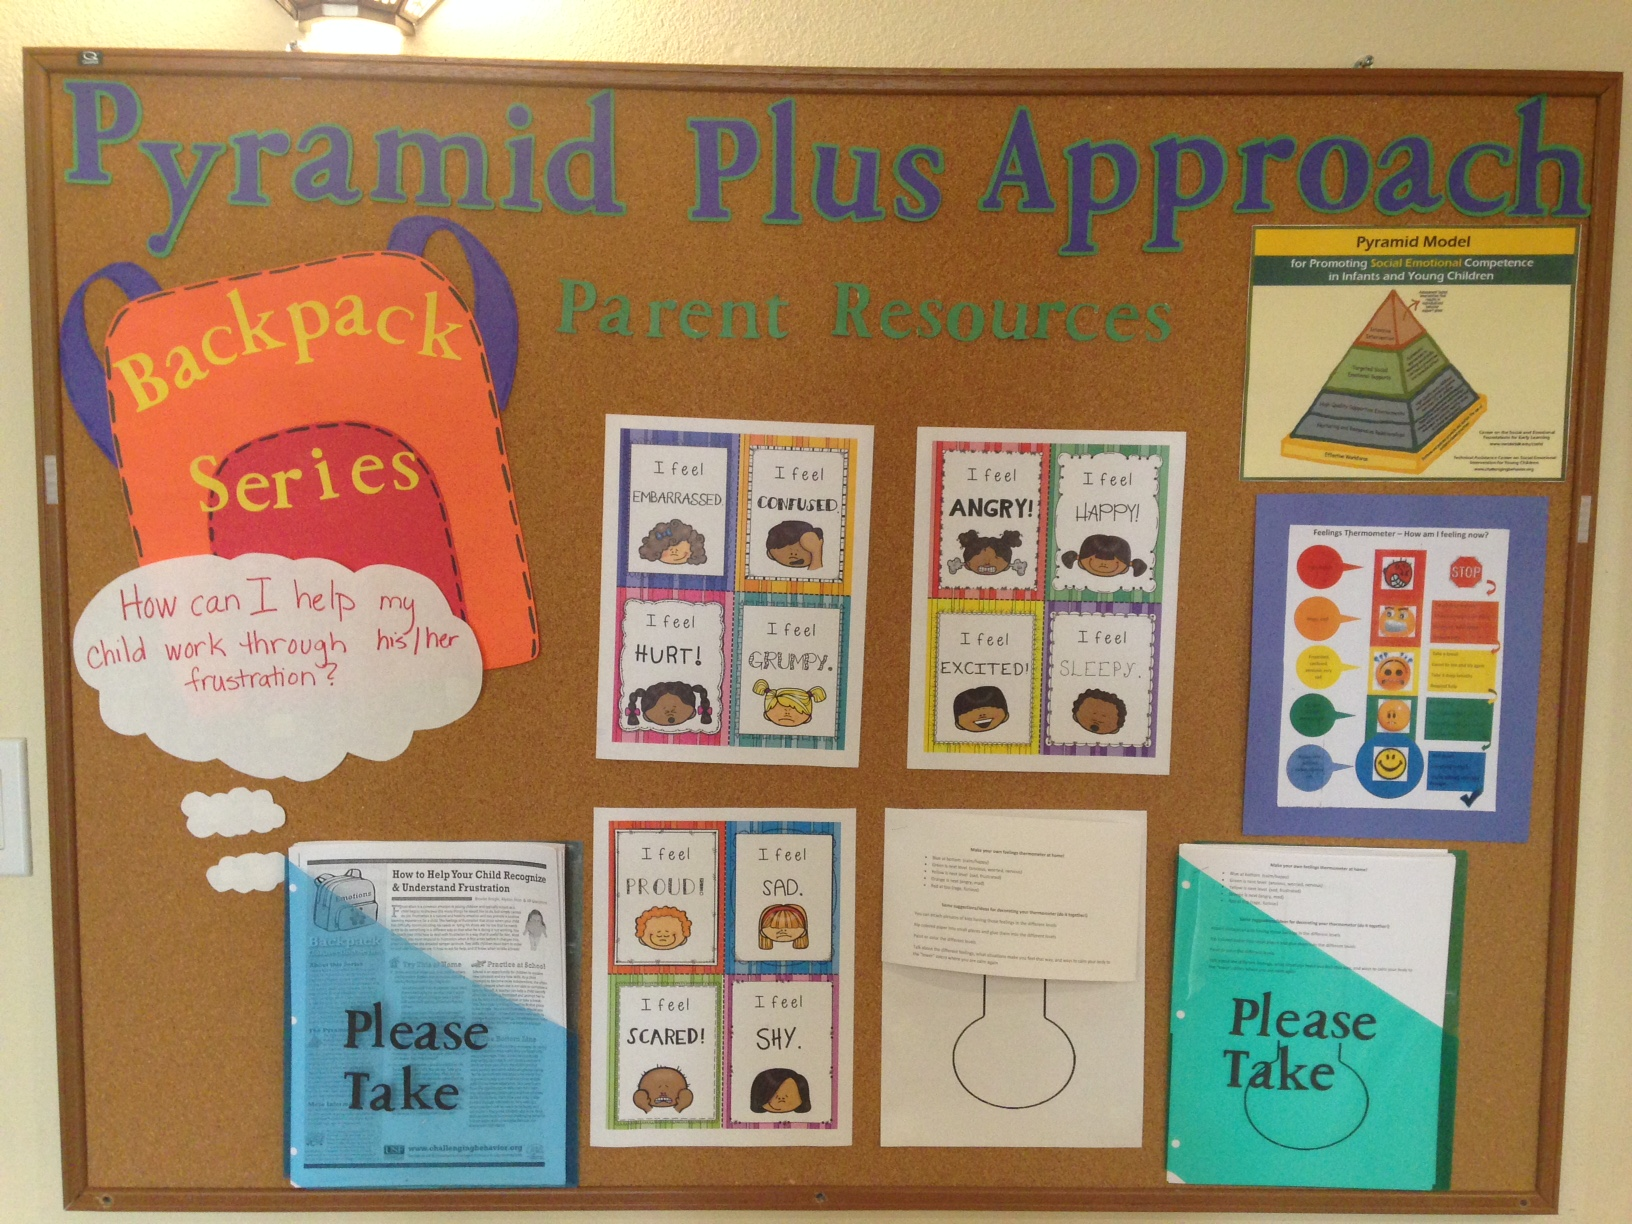 The Pyramid Plus board for parents at tlc. TLC uses pyramid plus to teach positive behavior development, including polite attention seeking